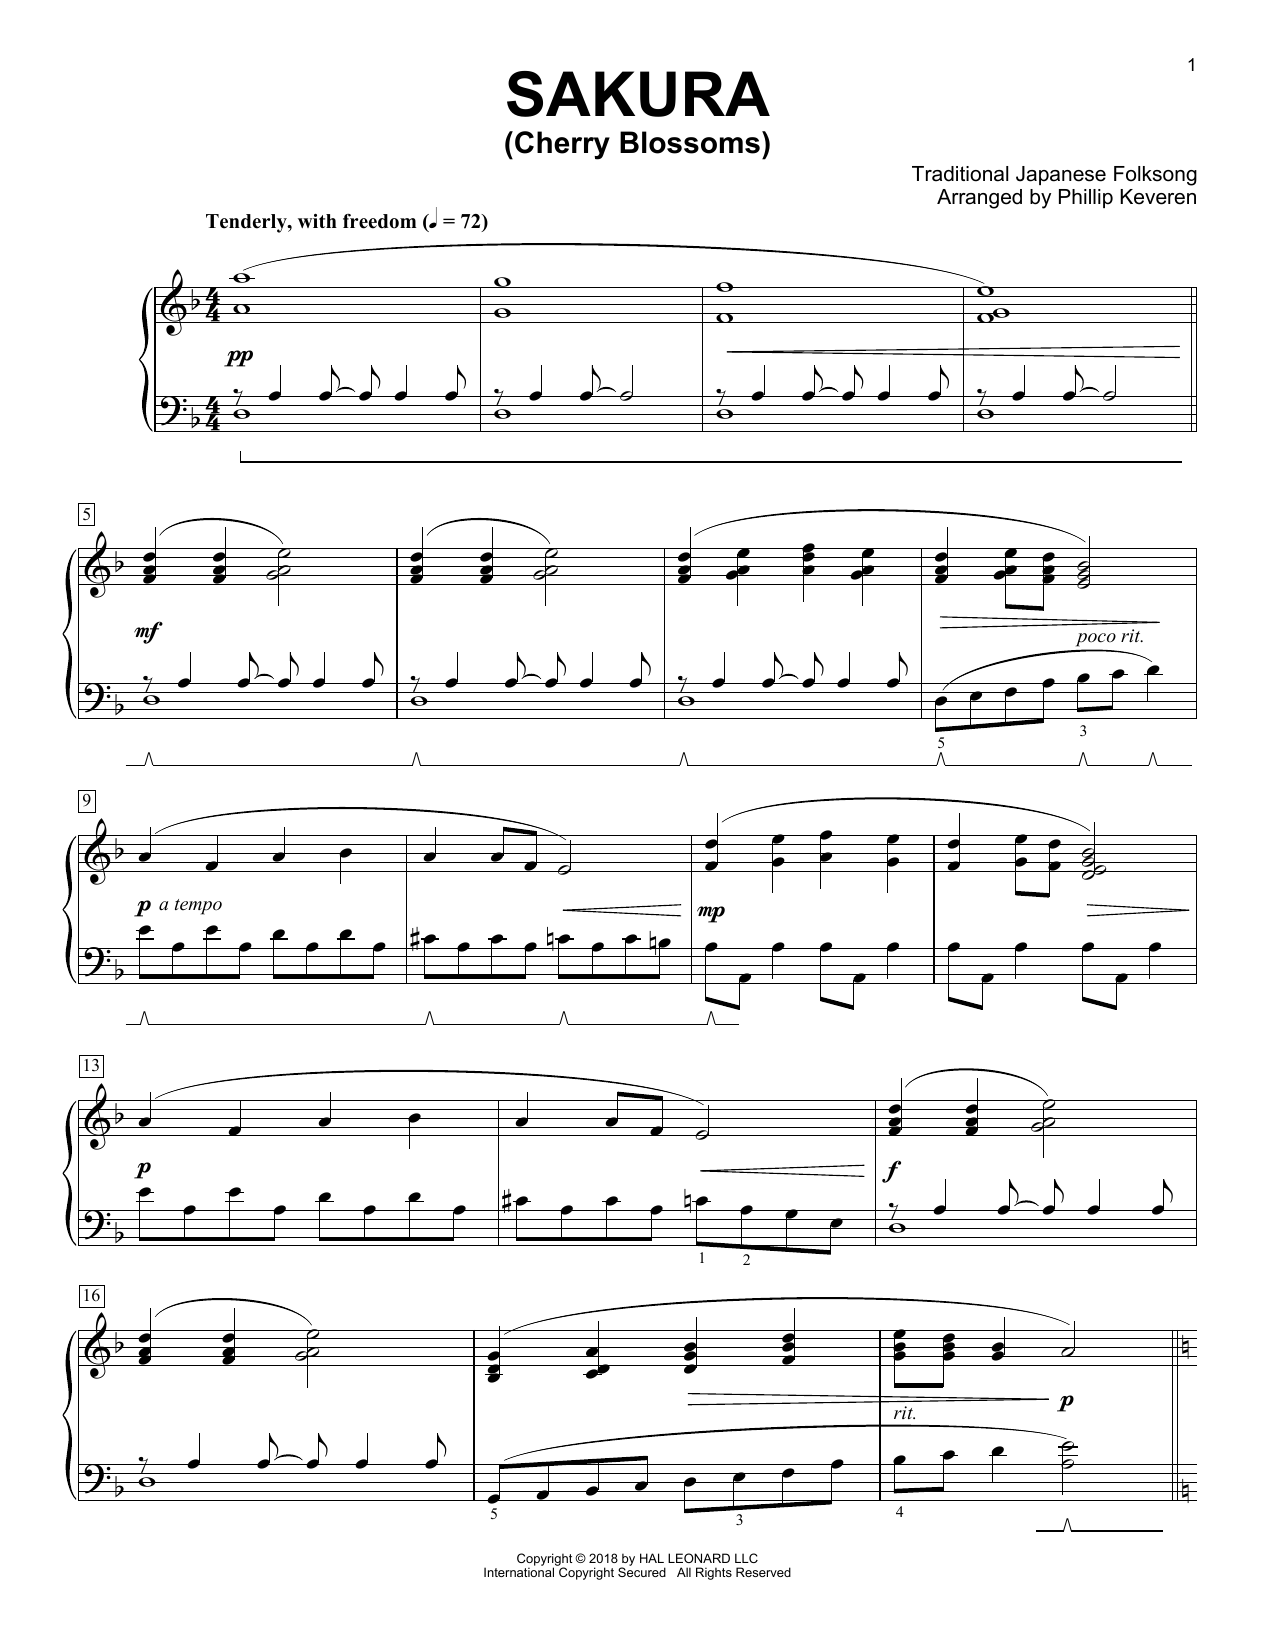 Traditional Japanese Folk Song Sakura (Cherry Blossoms) [Classical version] (arr. Phillip Keveren) sheet music notes and chords. Download Printable PDF.